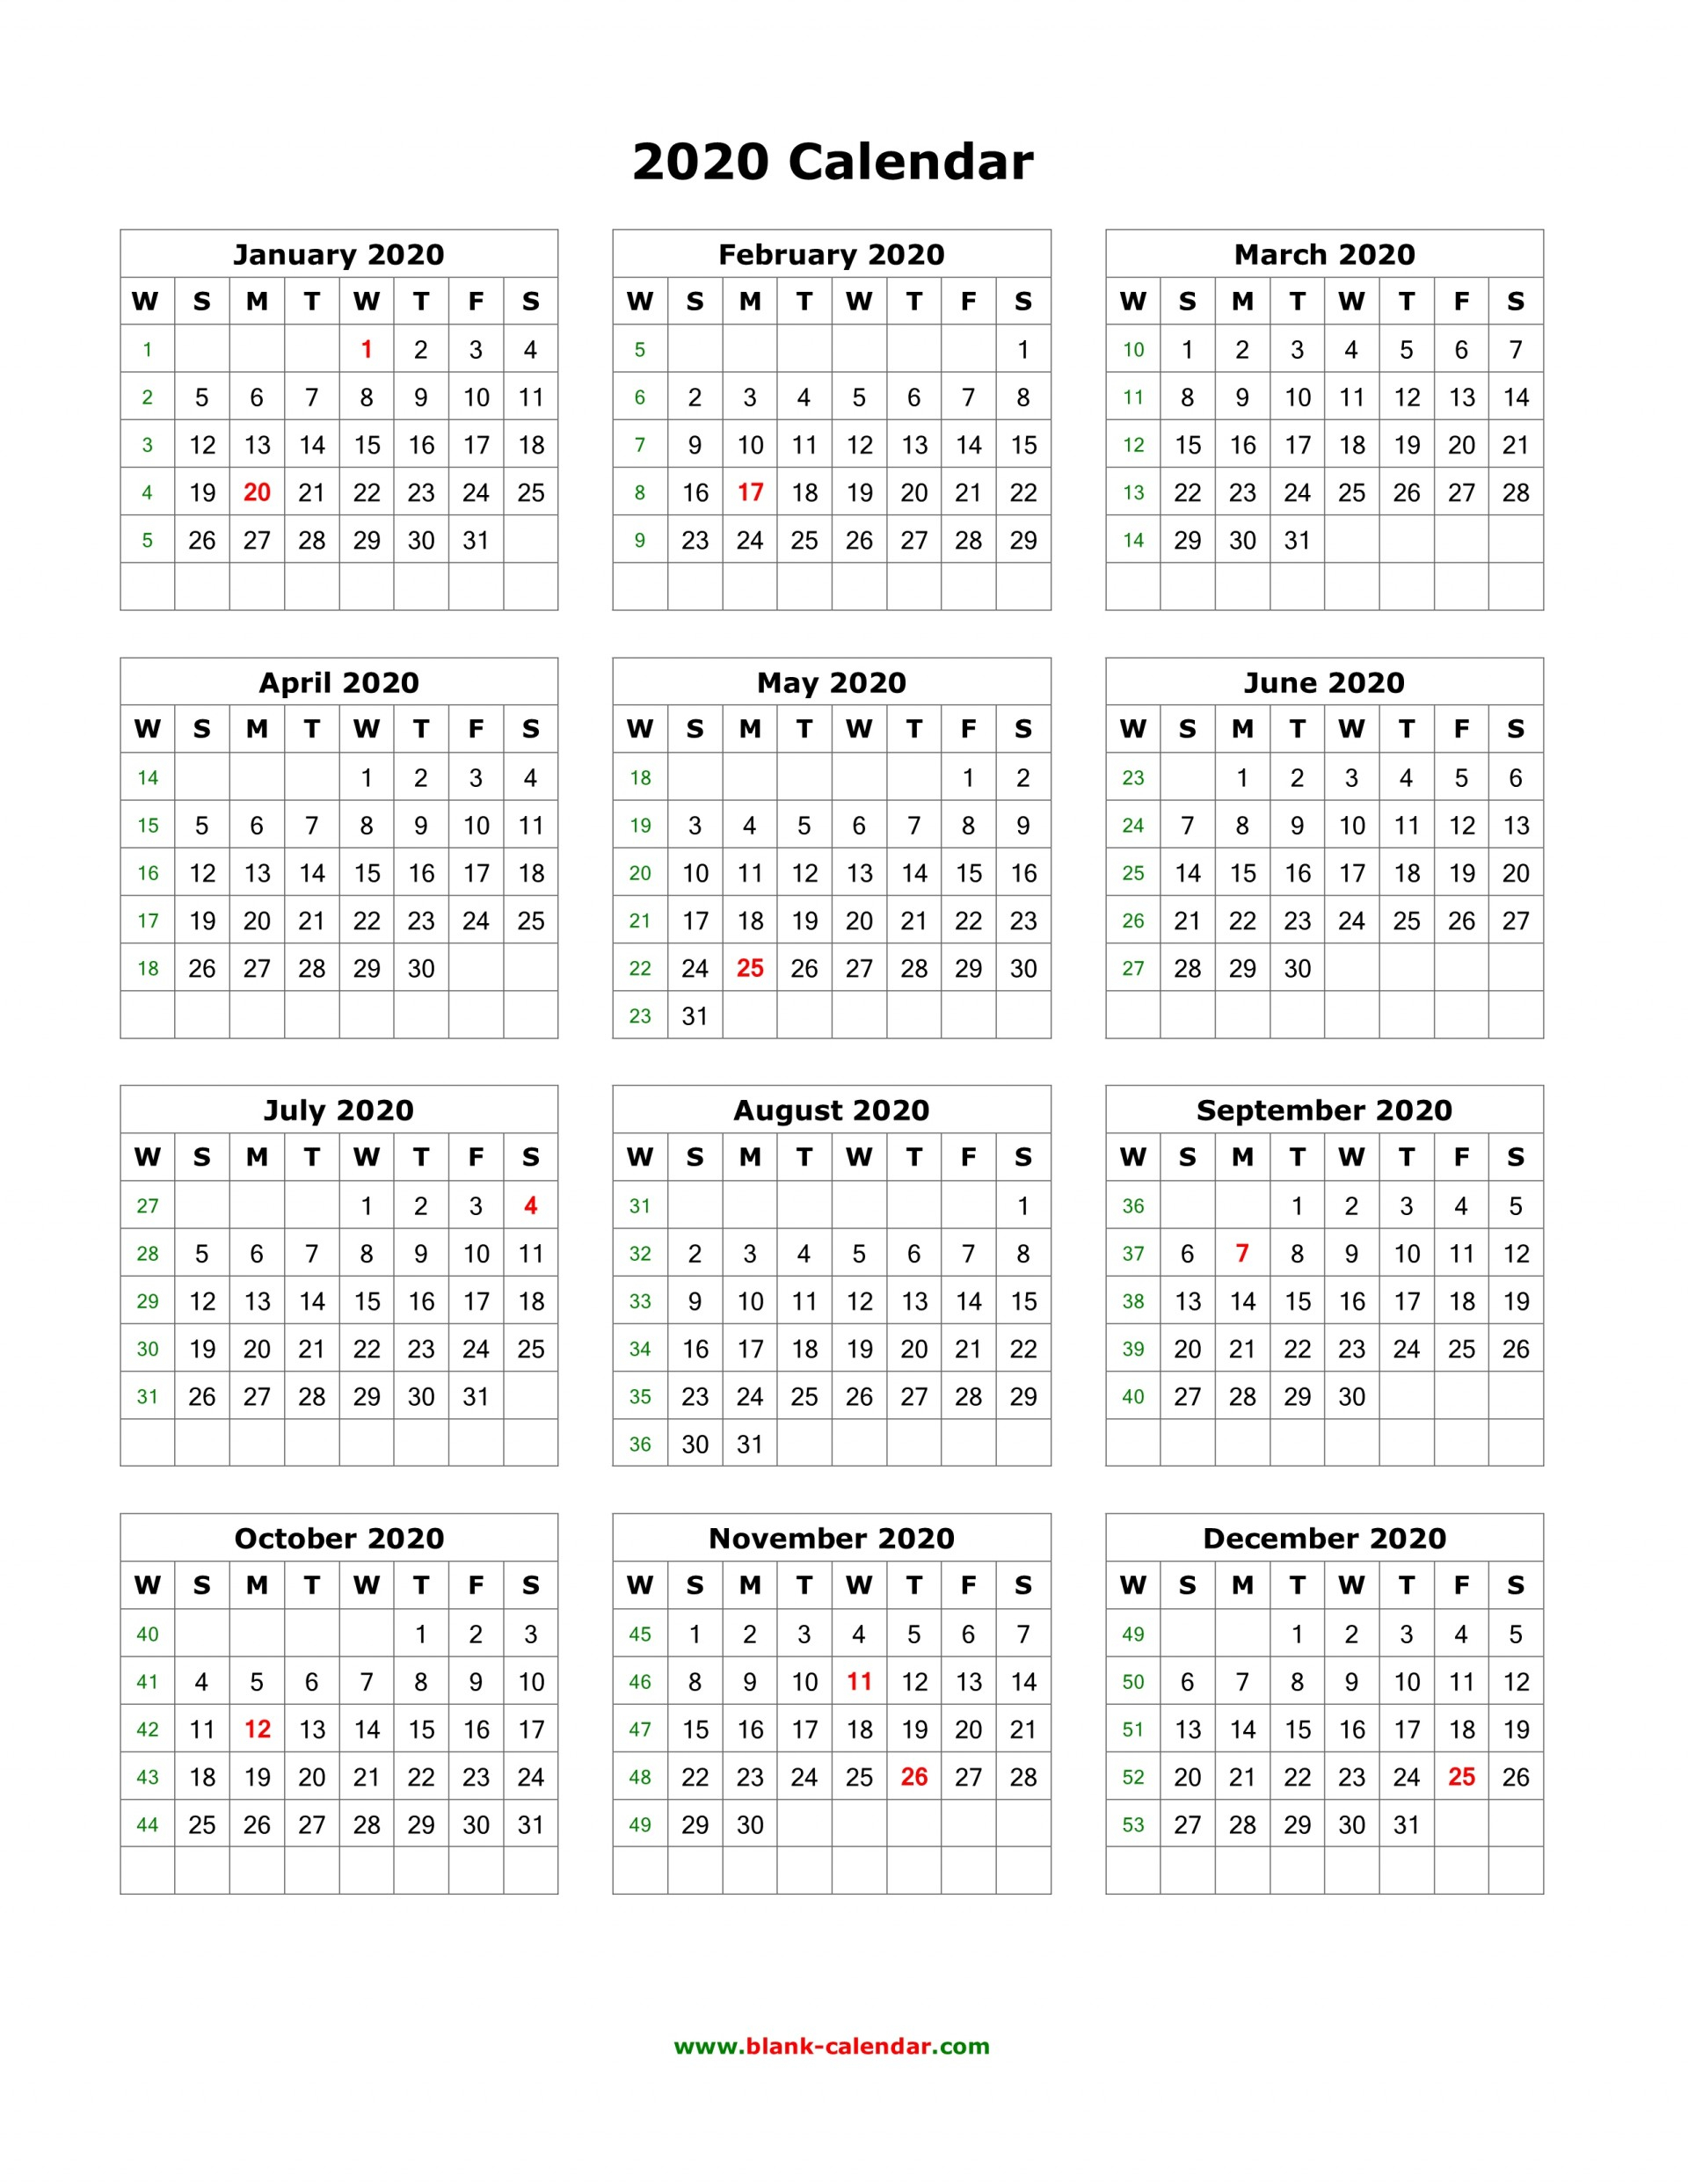 026 Yearly Calendar Blank Portrait Printable Top 2020 Word Monthly pertaining to 2020 Quarterly Calendar Printable Free